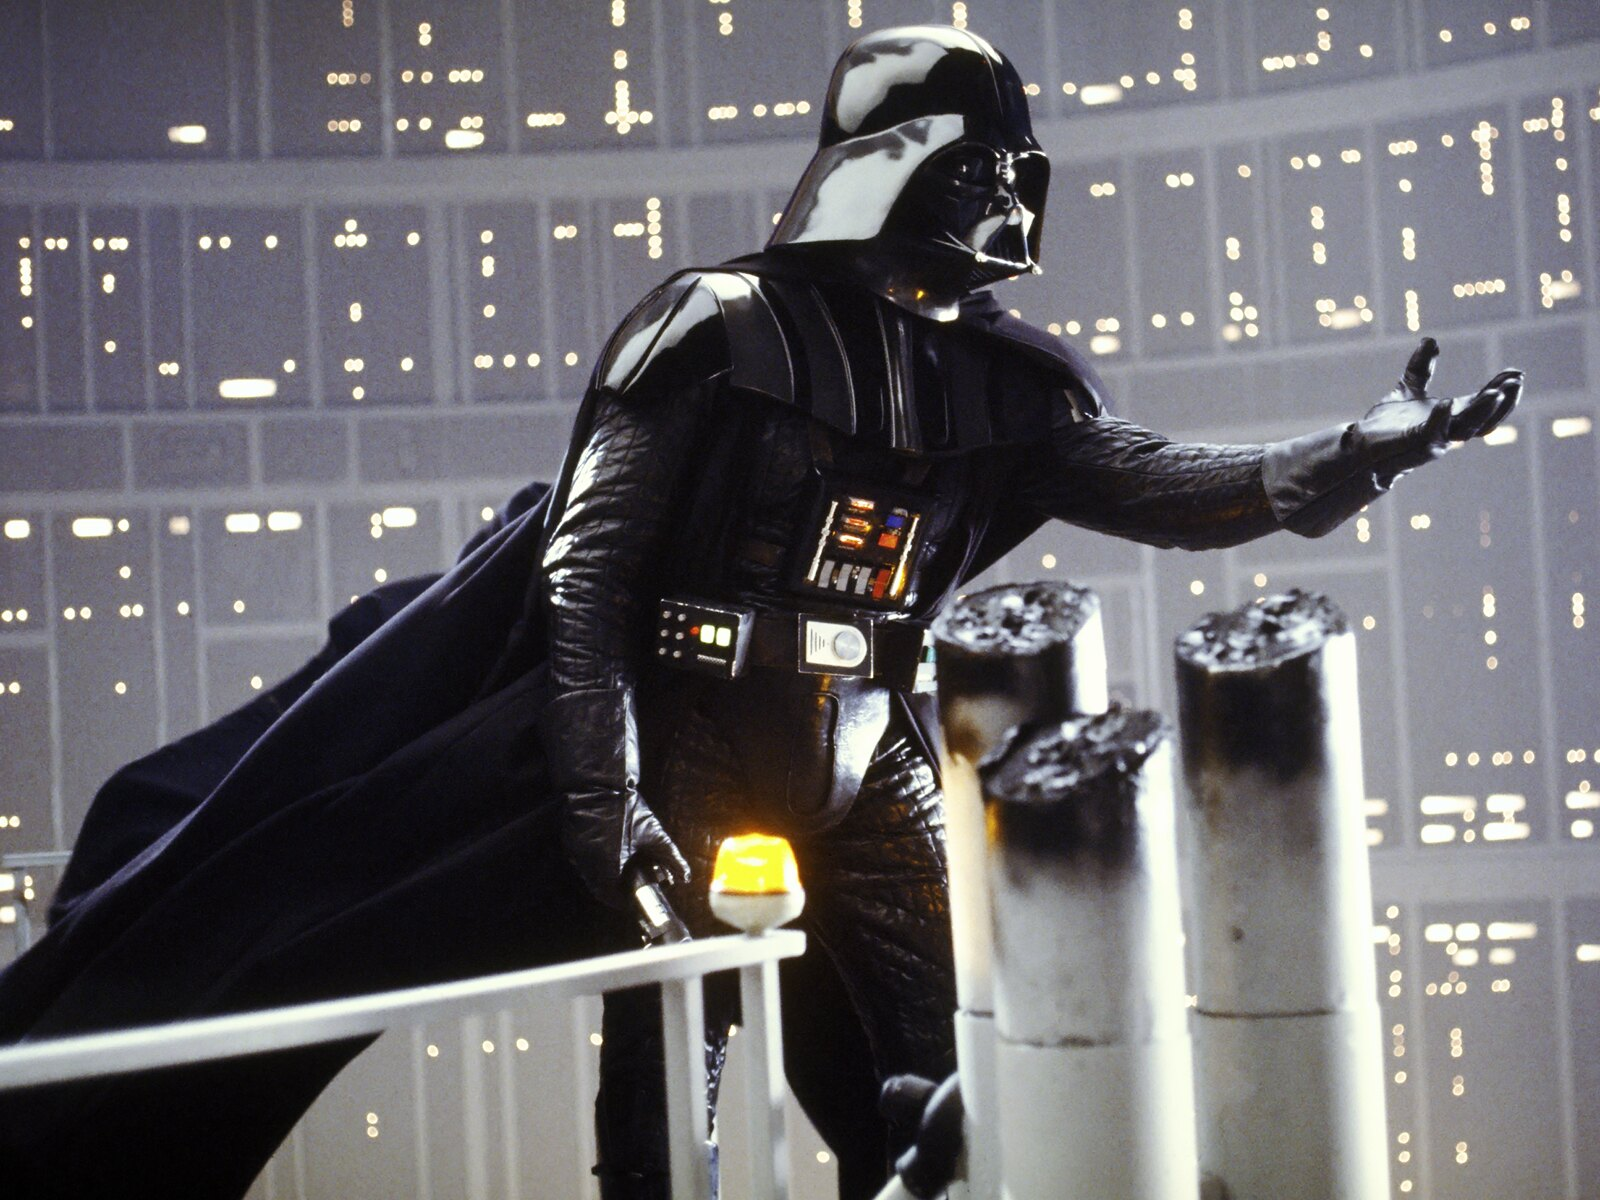 1980s Villains - Dave Prowse and James Earl Jones as Darth Vader from Star Wars: The Empire Strikes Back (1980)